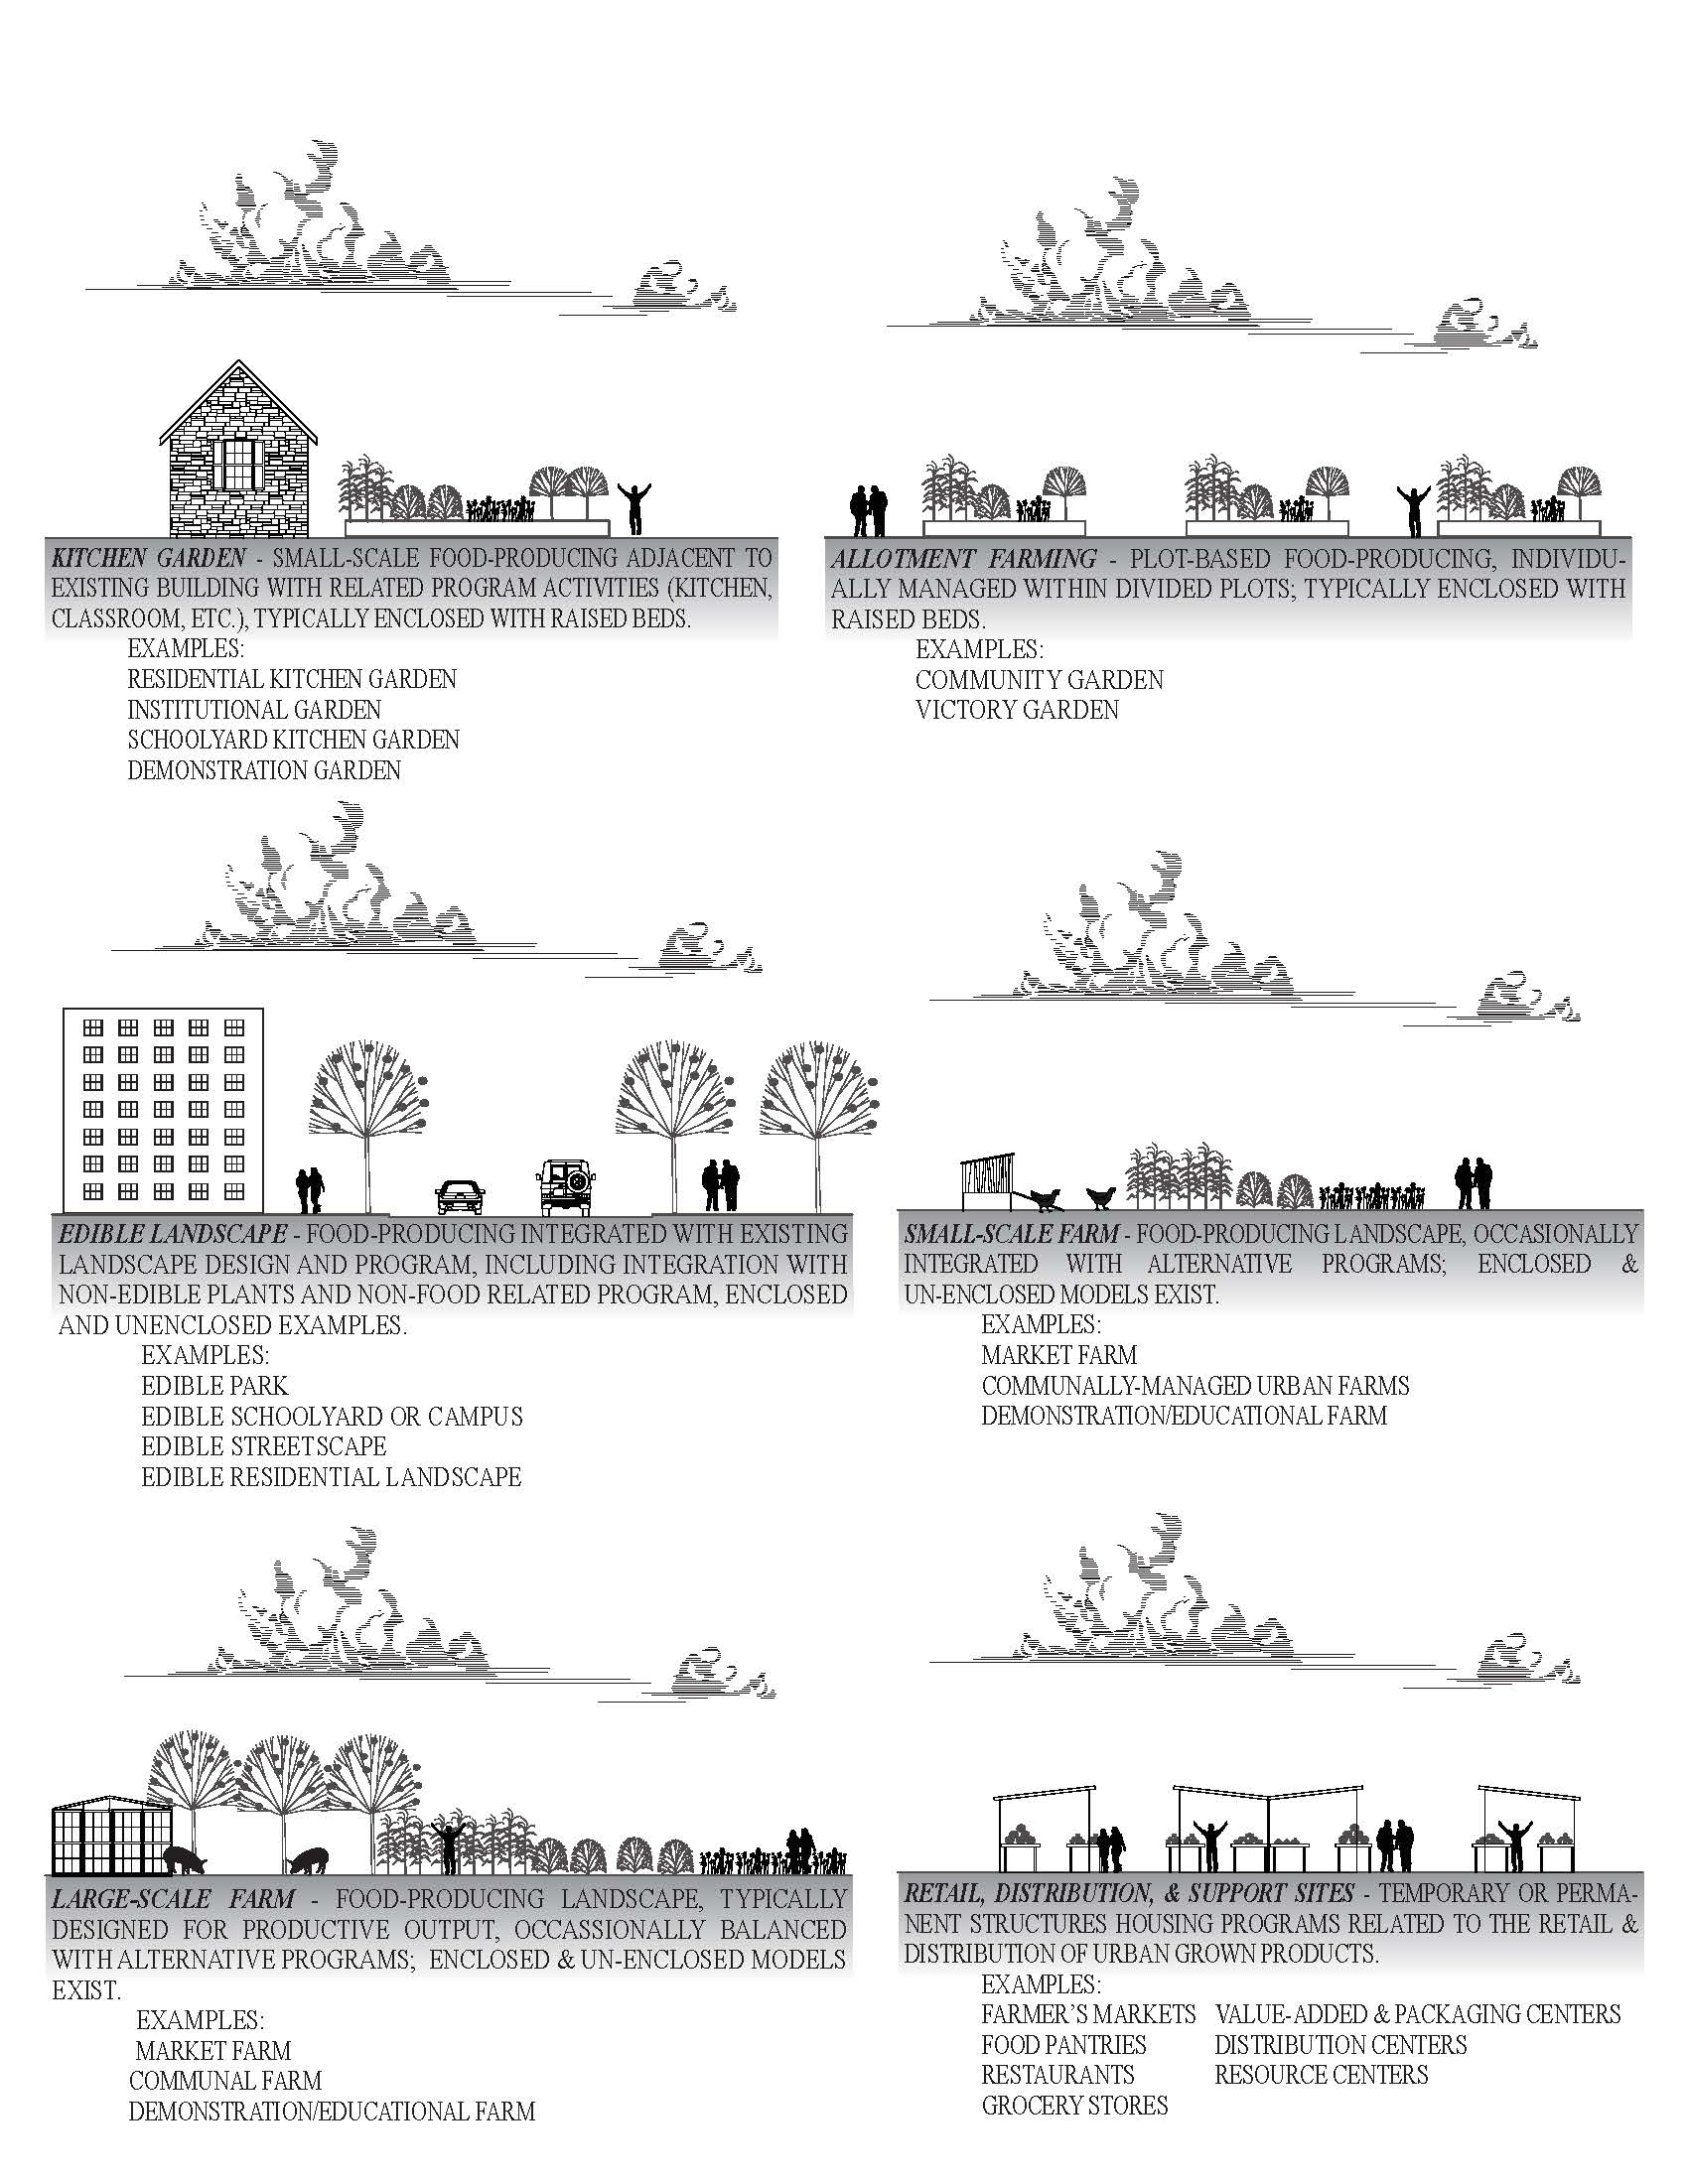 Managed urban farms are one of many formal typologies of urban